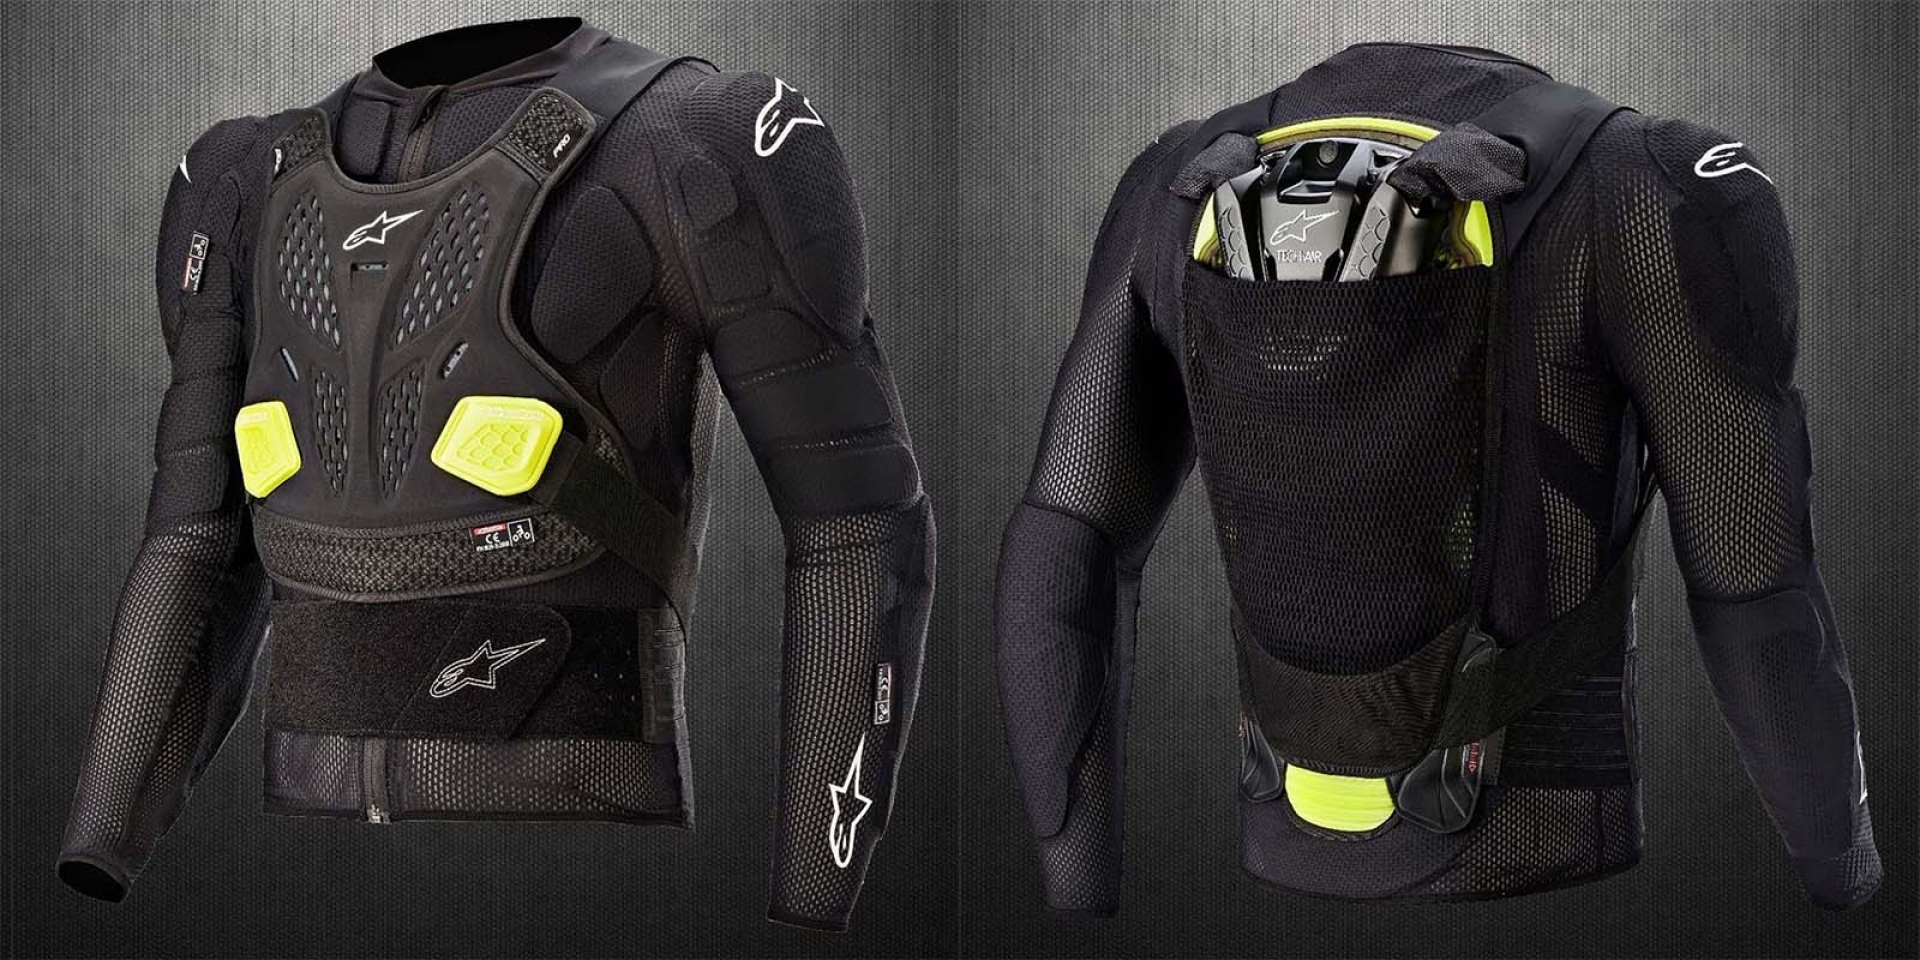 Alpinestars「TECH-AIR® Off-Road」越野氣囊防摔衣登場!